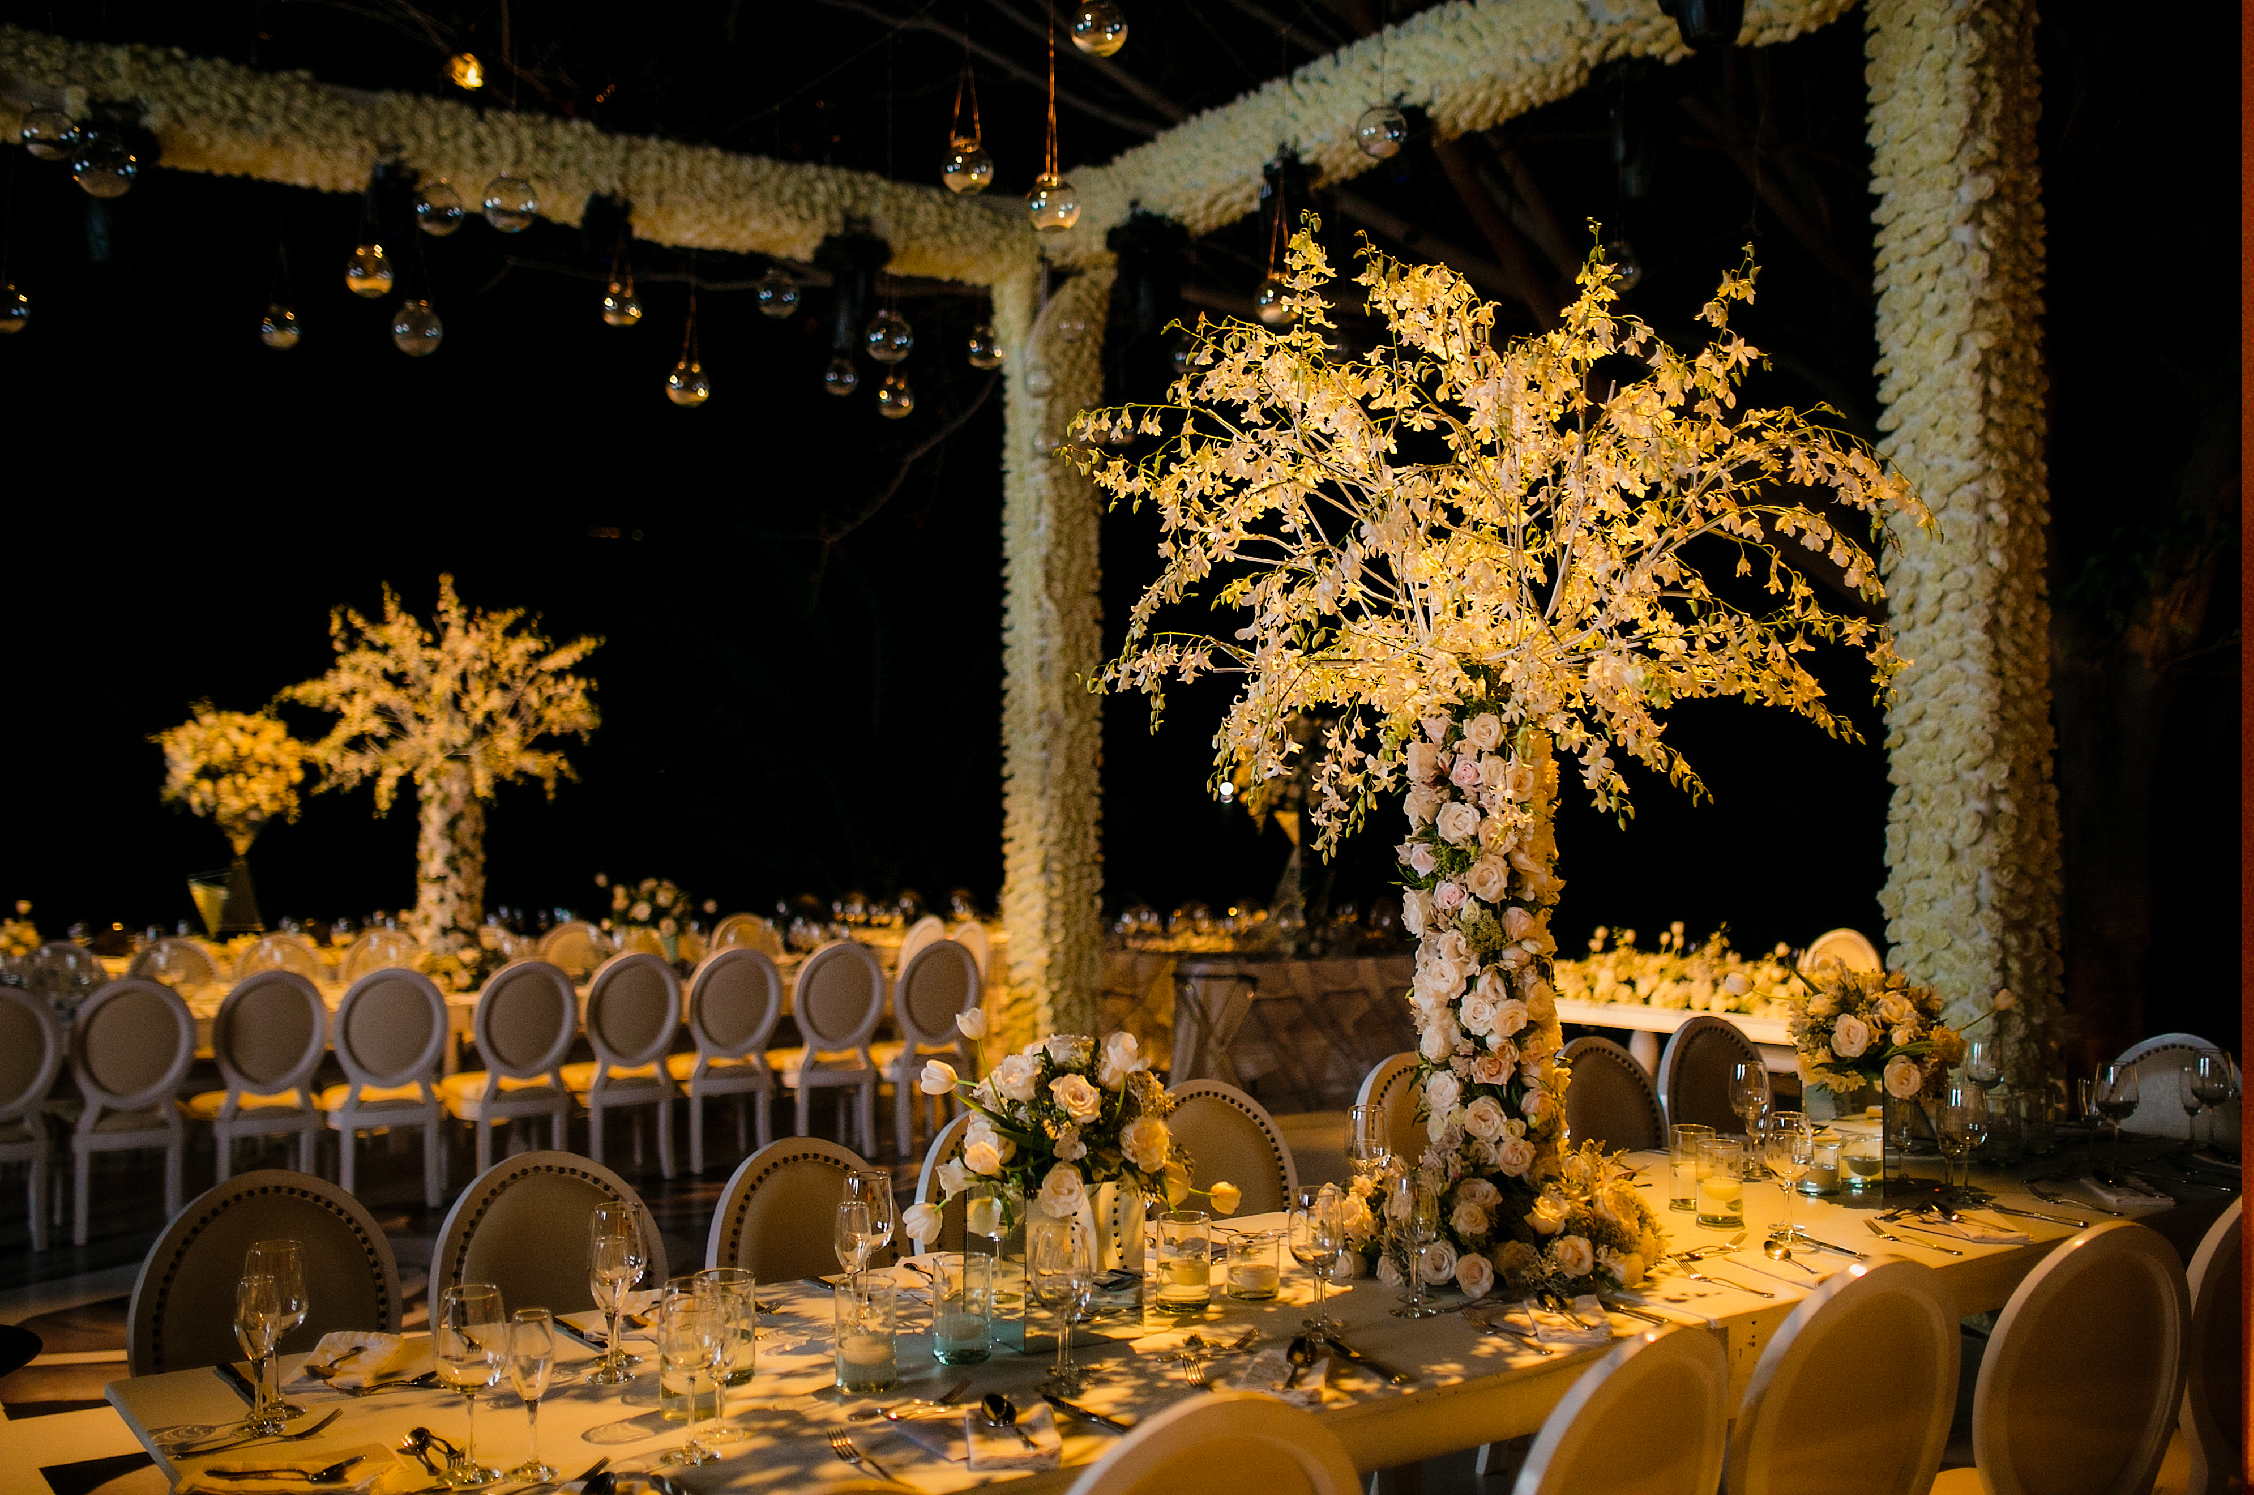 wedding-planner-mexico-nayarit-hado-decoracion-boda-06